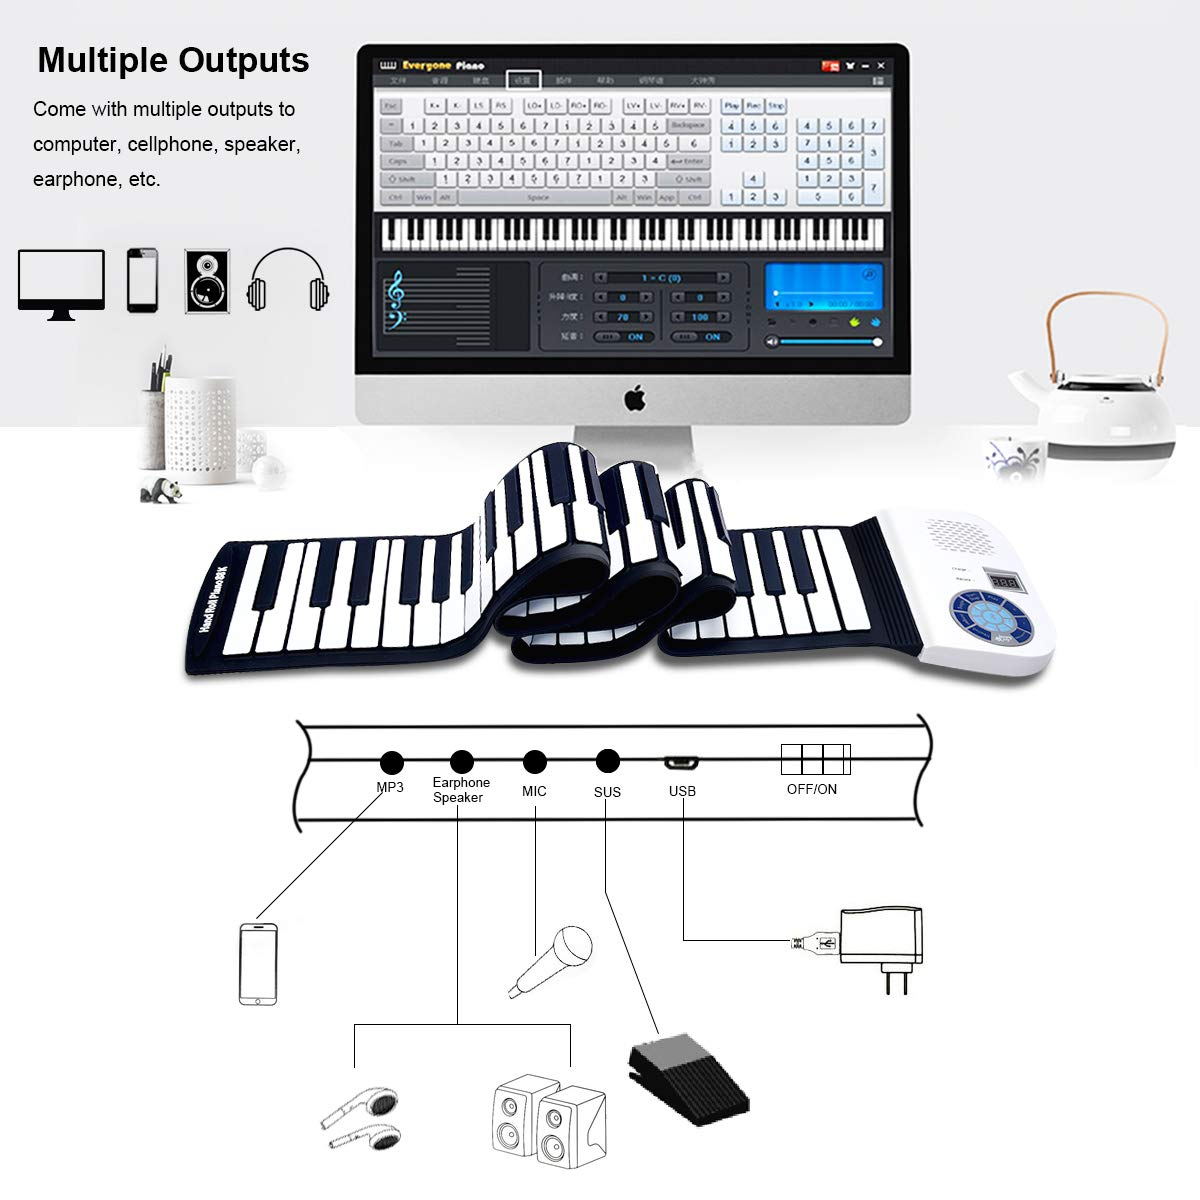 BABY JOY Roll Up Piano, Upgraded Electronic Piano Keyboard, Portable Piano w/Bluetooth, MP3 Headphone USB Input, MIDI OUT, 128 Rhythms, Record, Play, Volume Control (White, 88Keys) by BABY JOY (Image #2)